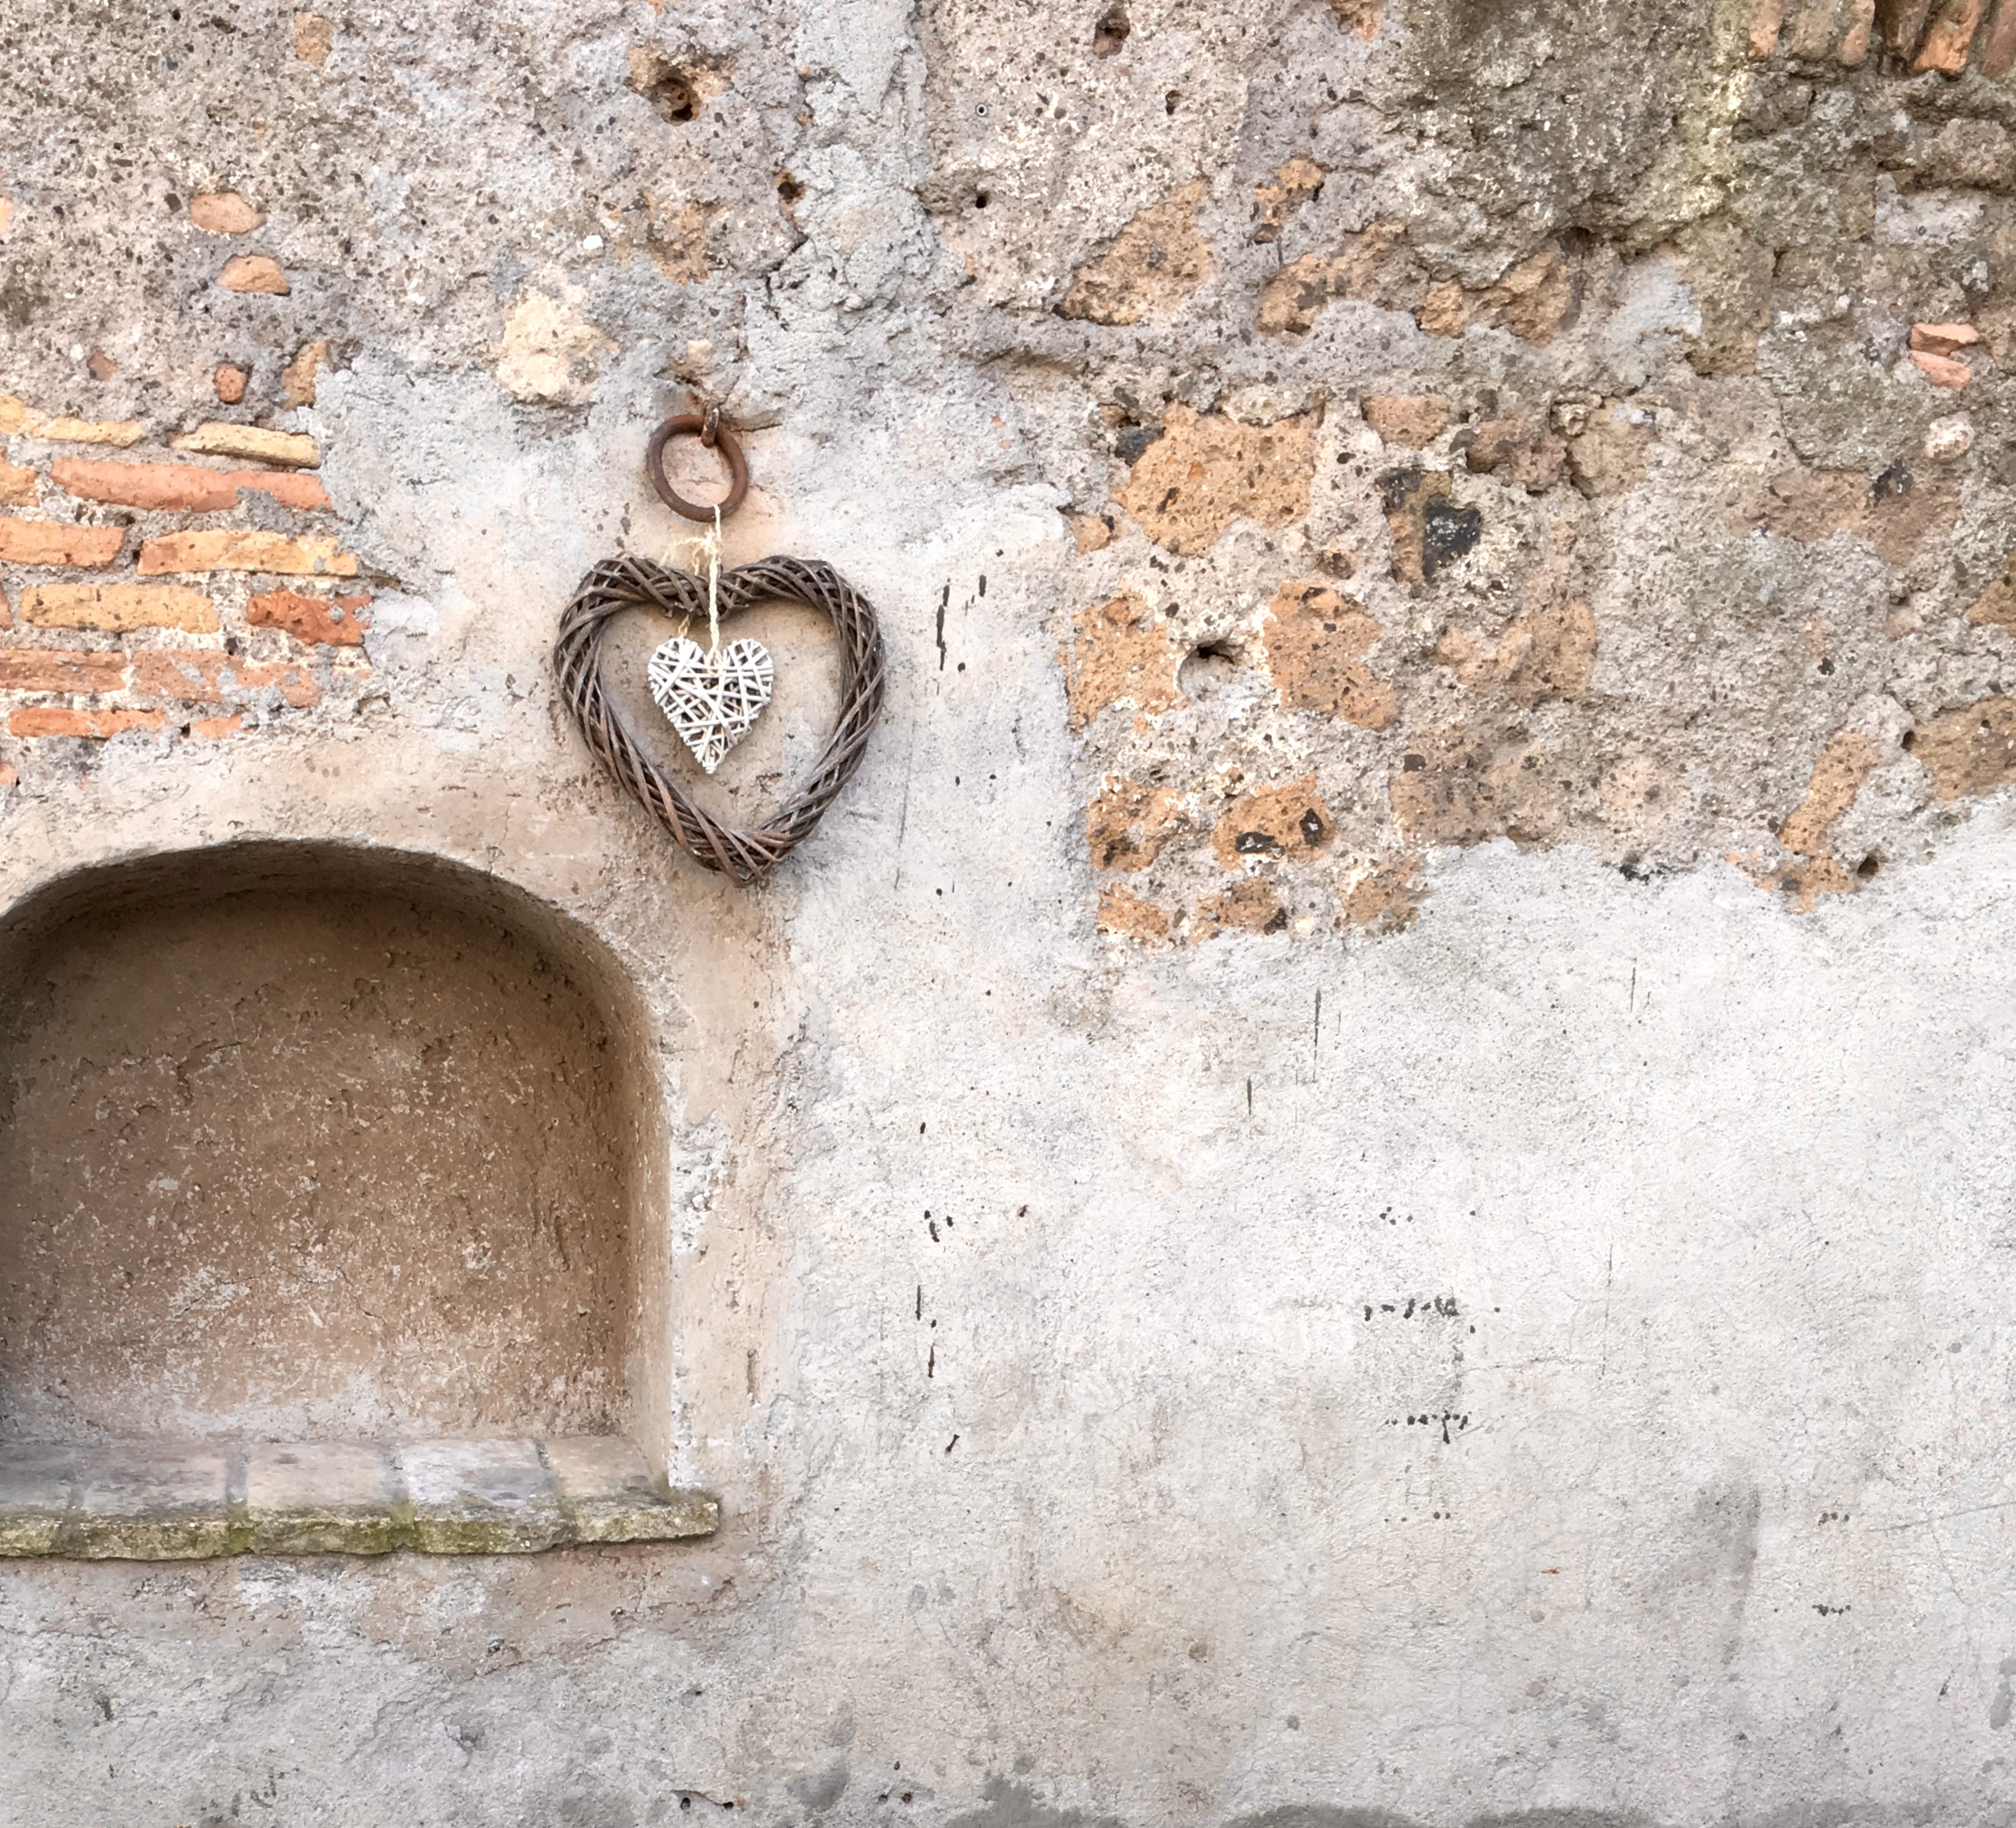 heart decorations on an old Italian building